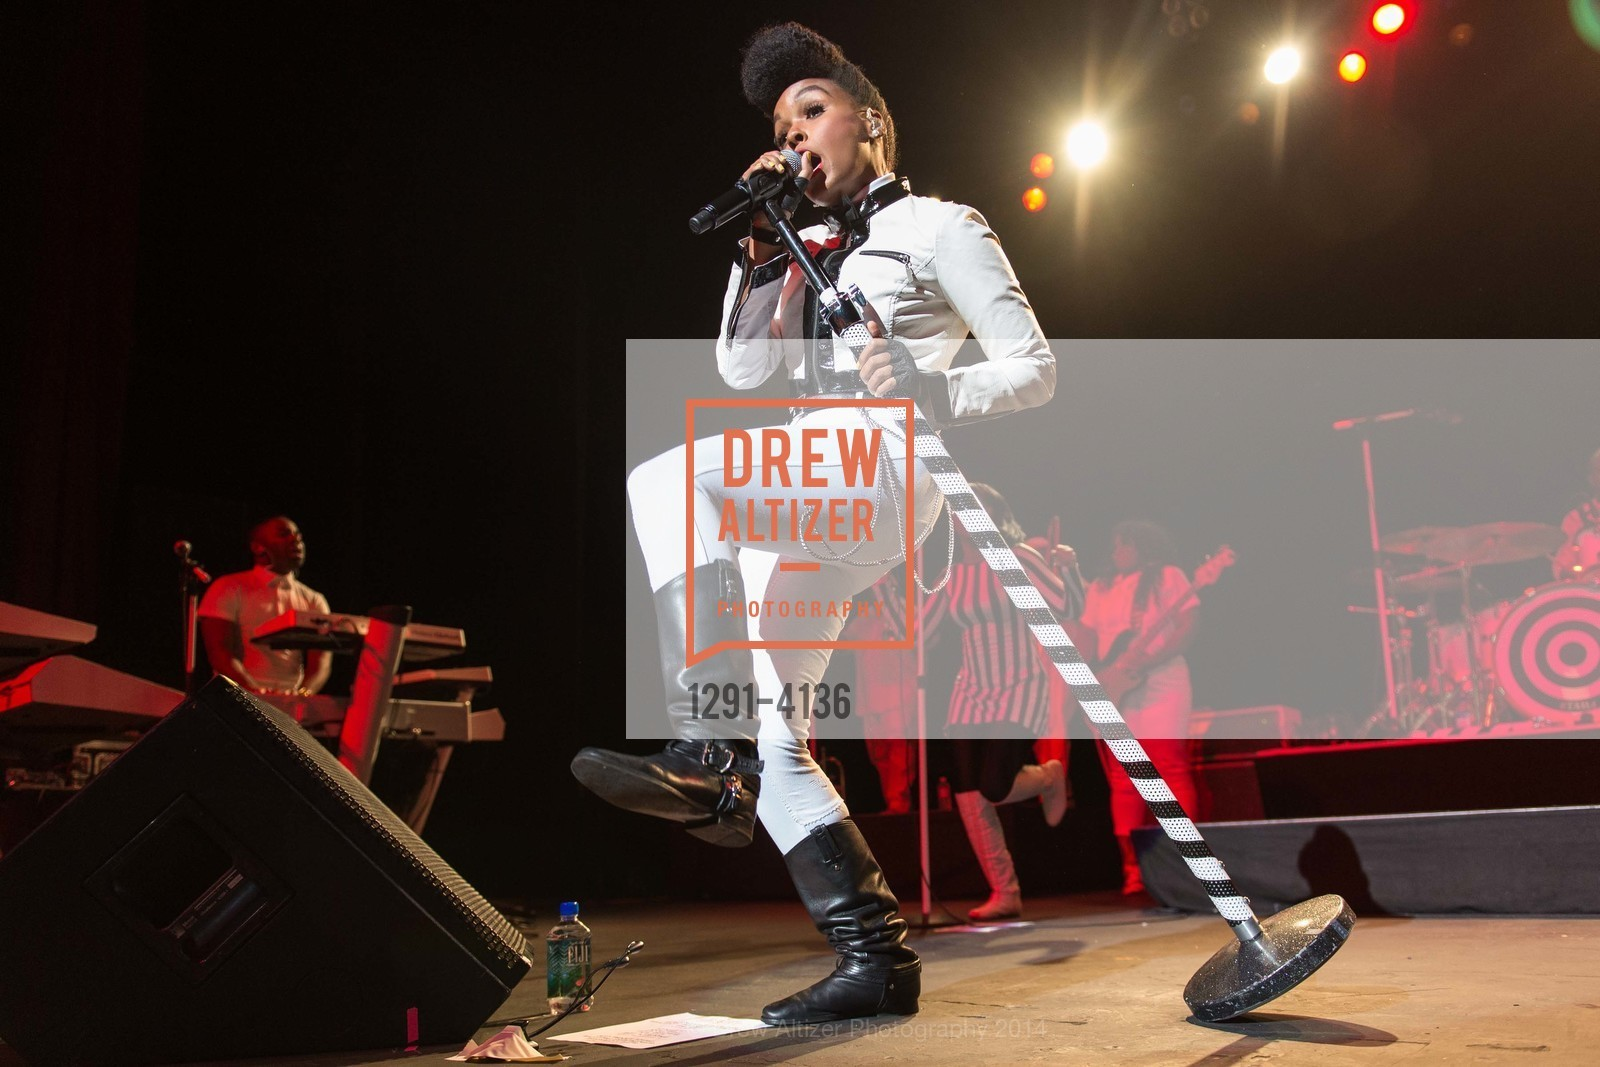 Performance By Janelle Monae, Photo #1291-4136